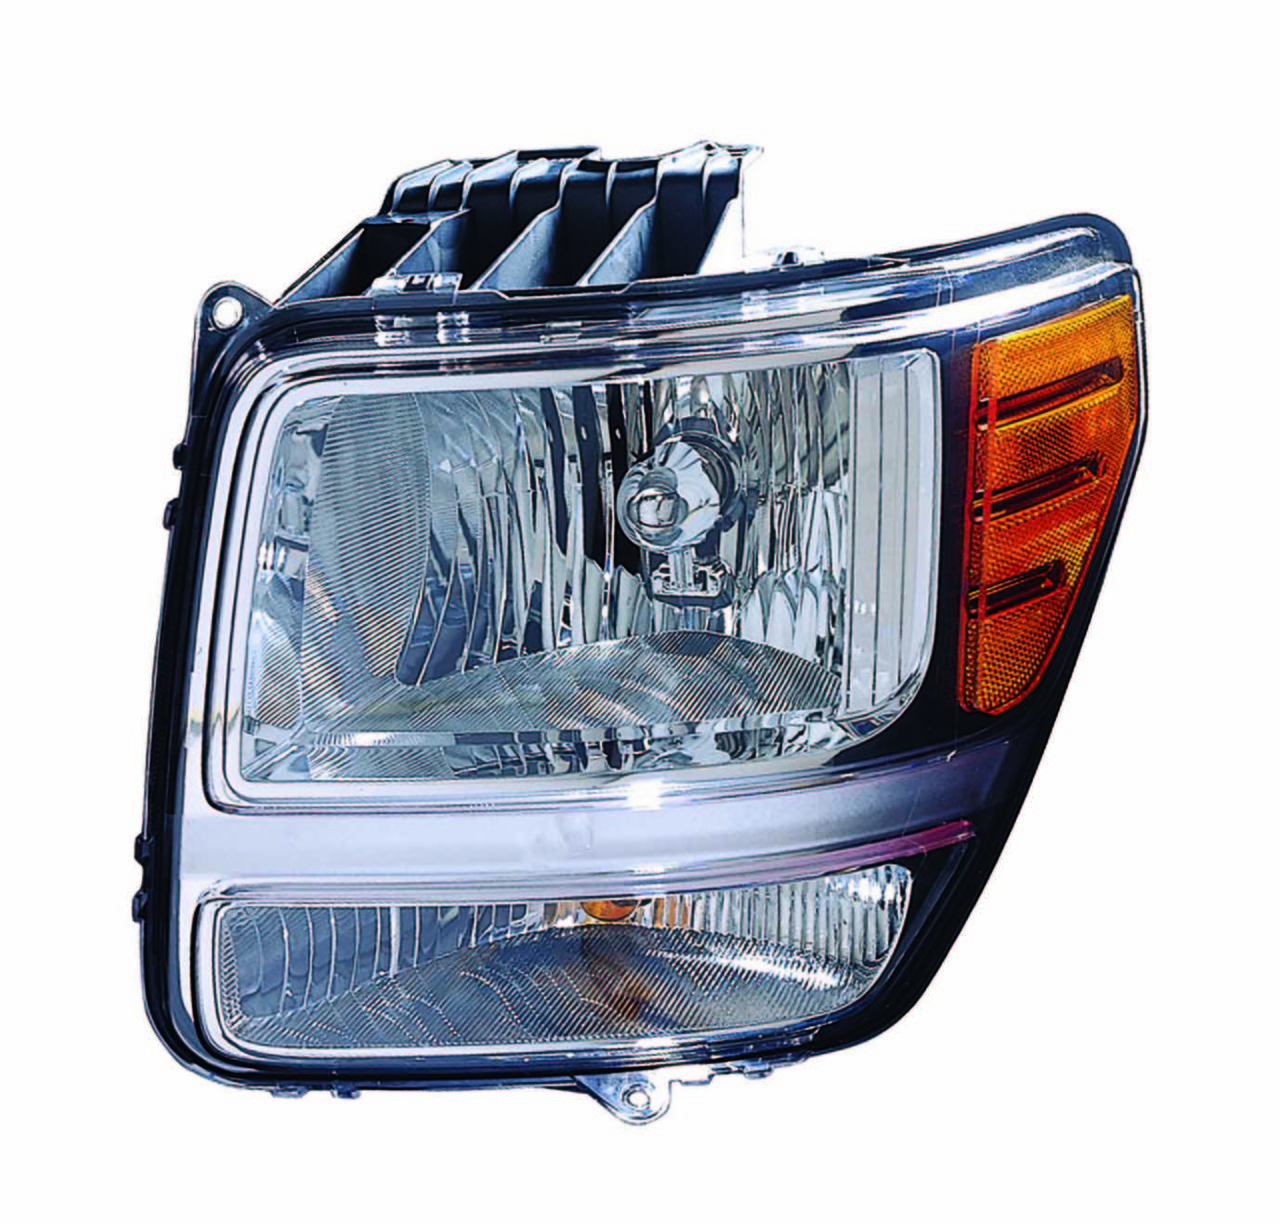 Dodge Nitro 2007 2008 2009 2010 2011 left driver headlight